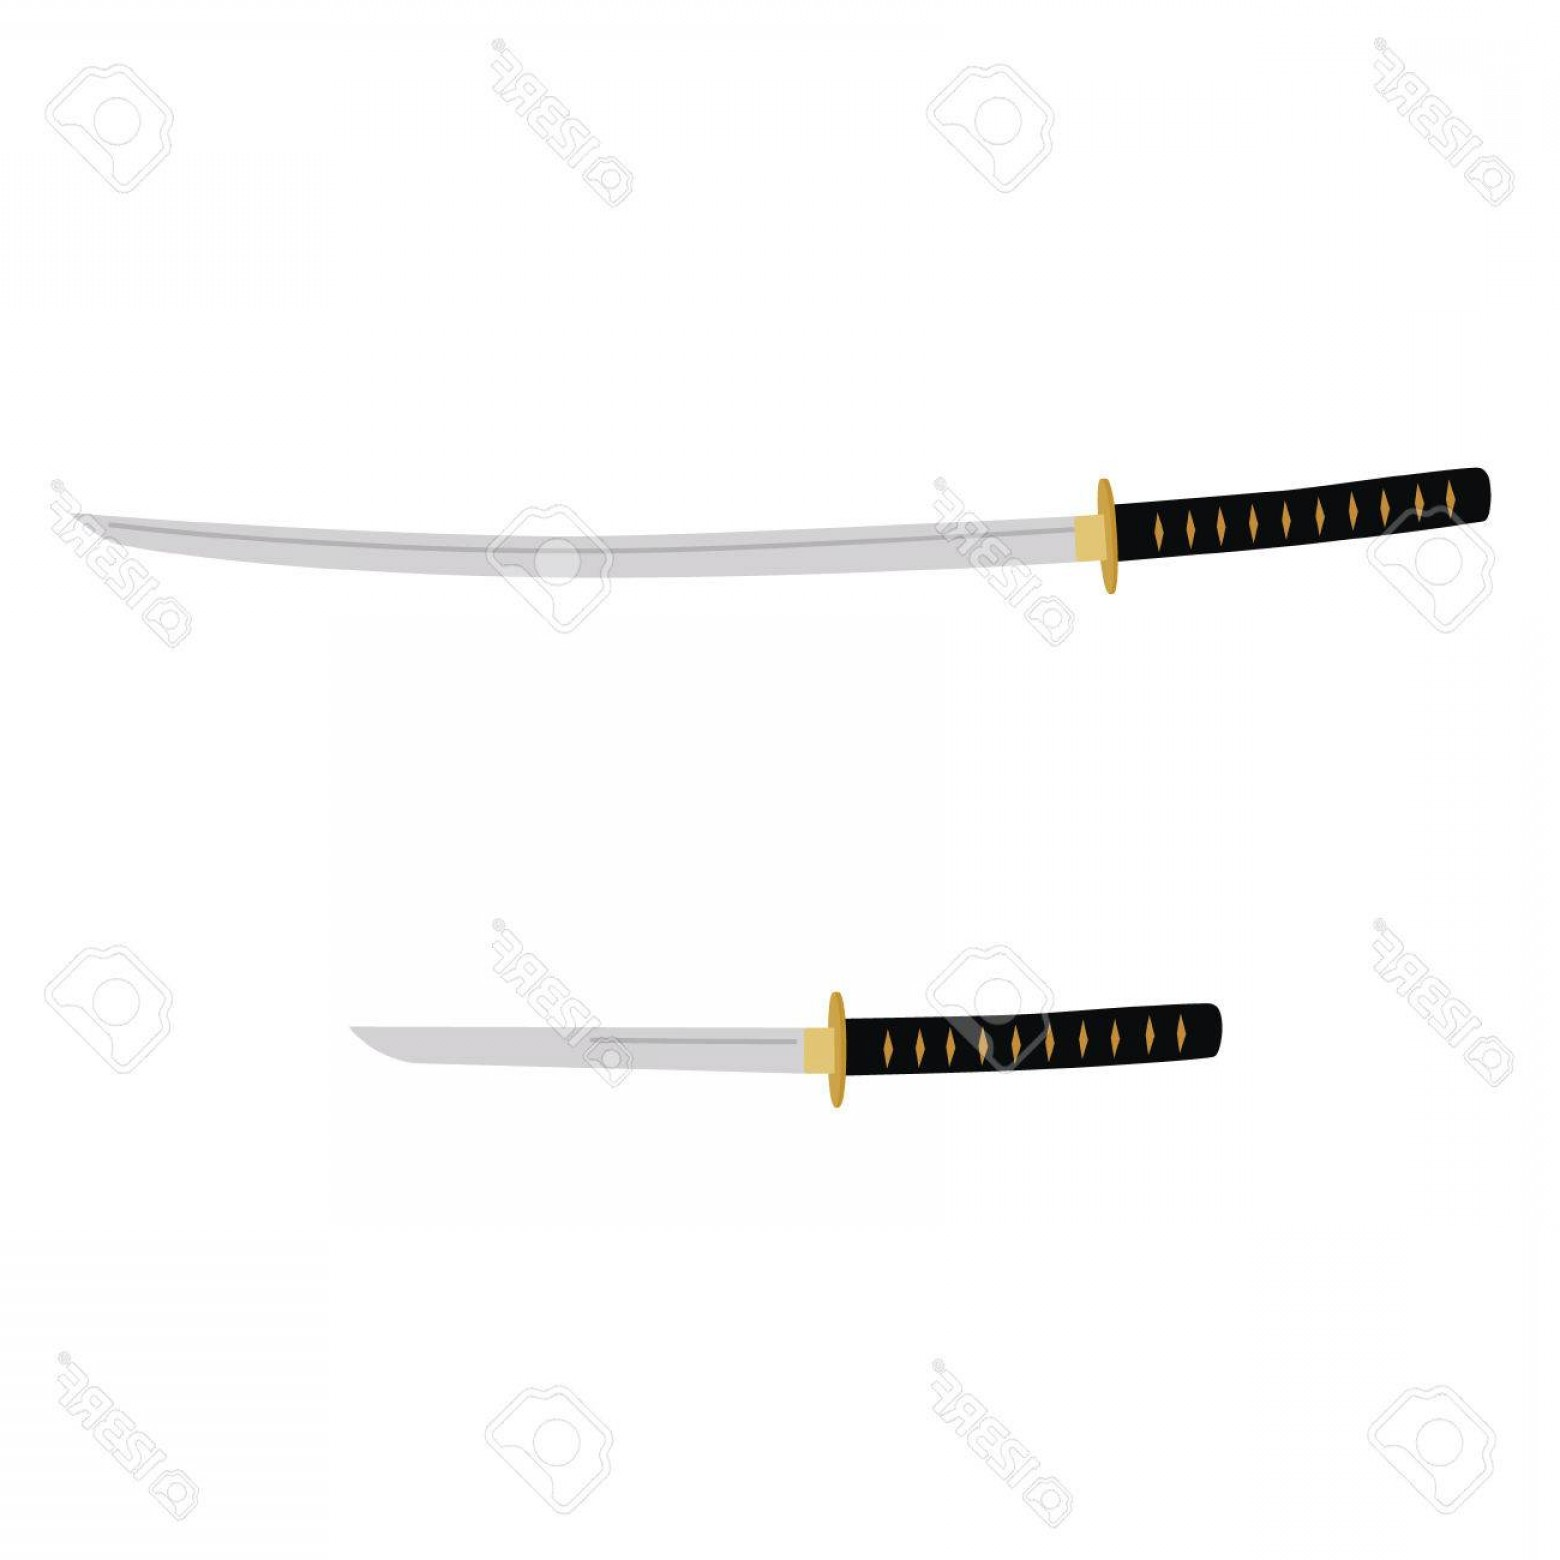 Samuri Sword Vector: Photostock Vector Vector Illustration Japanese Katana And Tanto Sword Samurai Sword Traditional Weapon